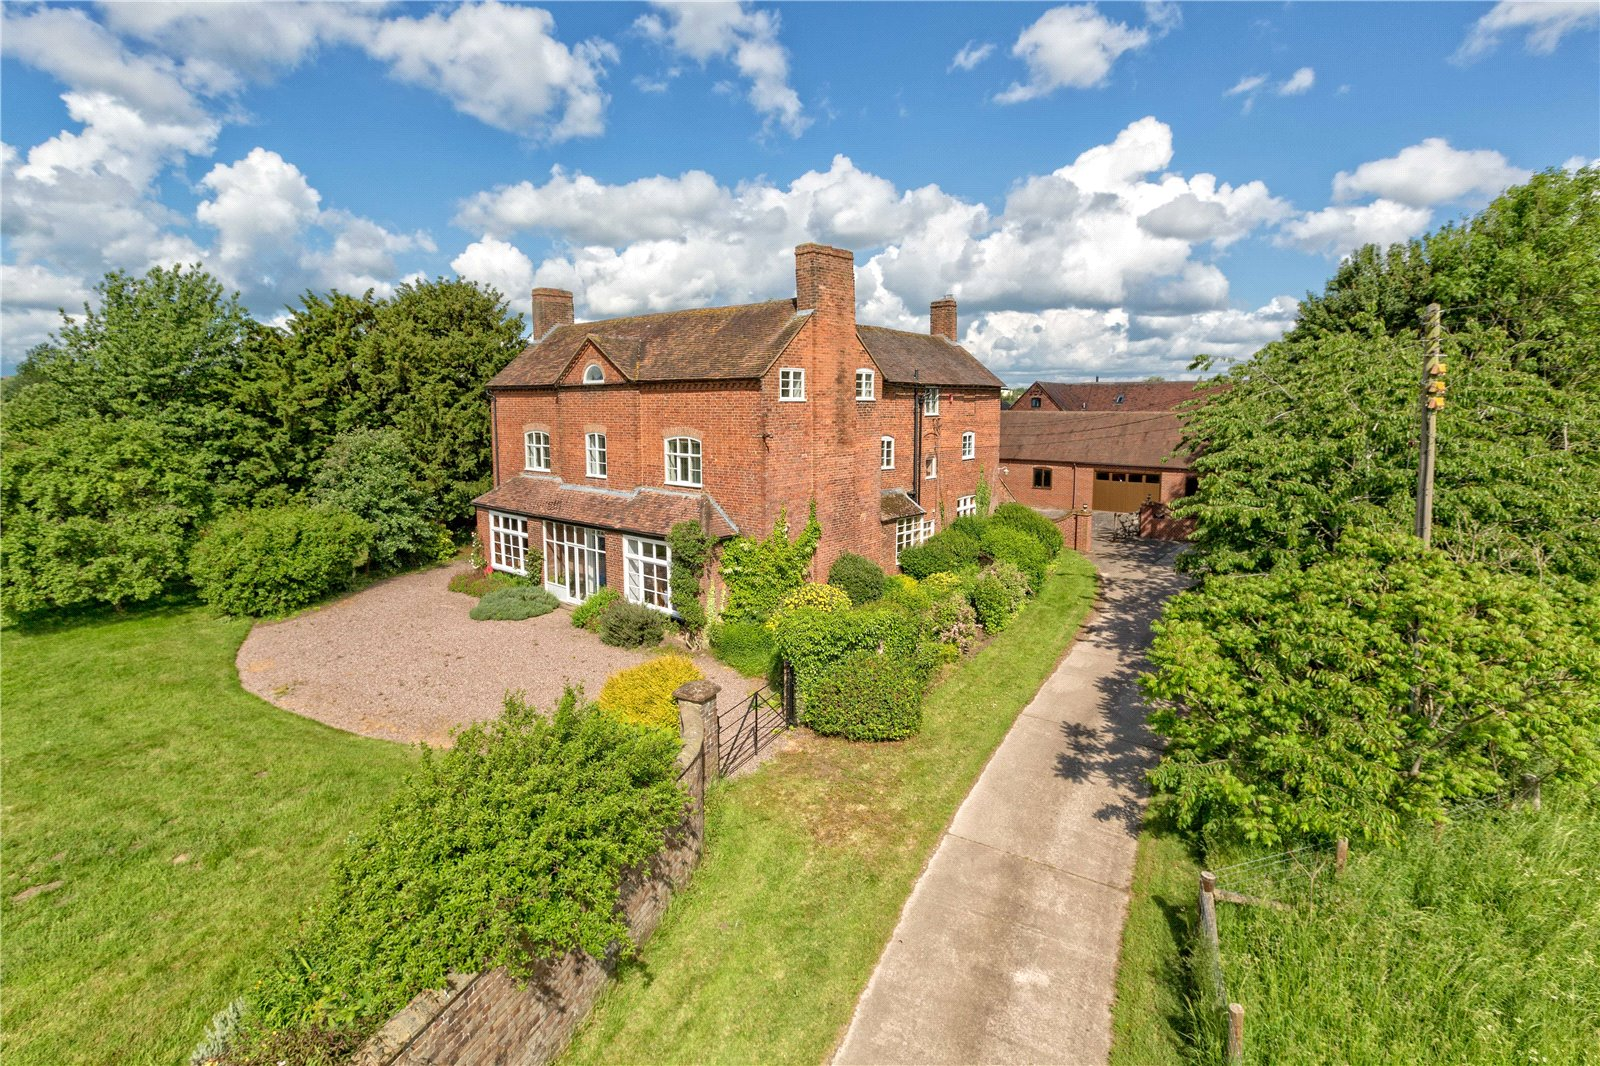 Brockton Hall Farm, Brockton, Shifnal, Shropshire, TF11